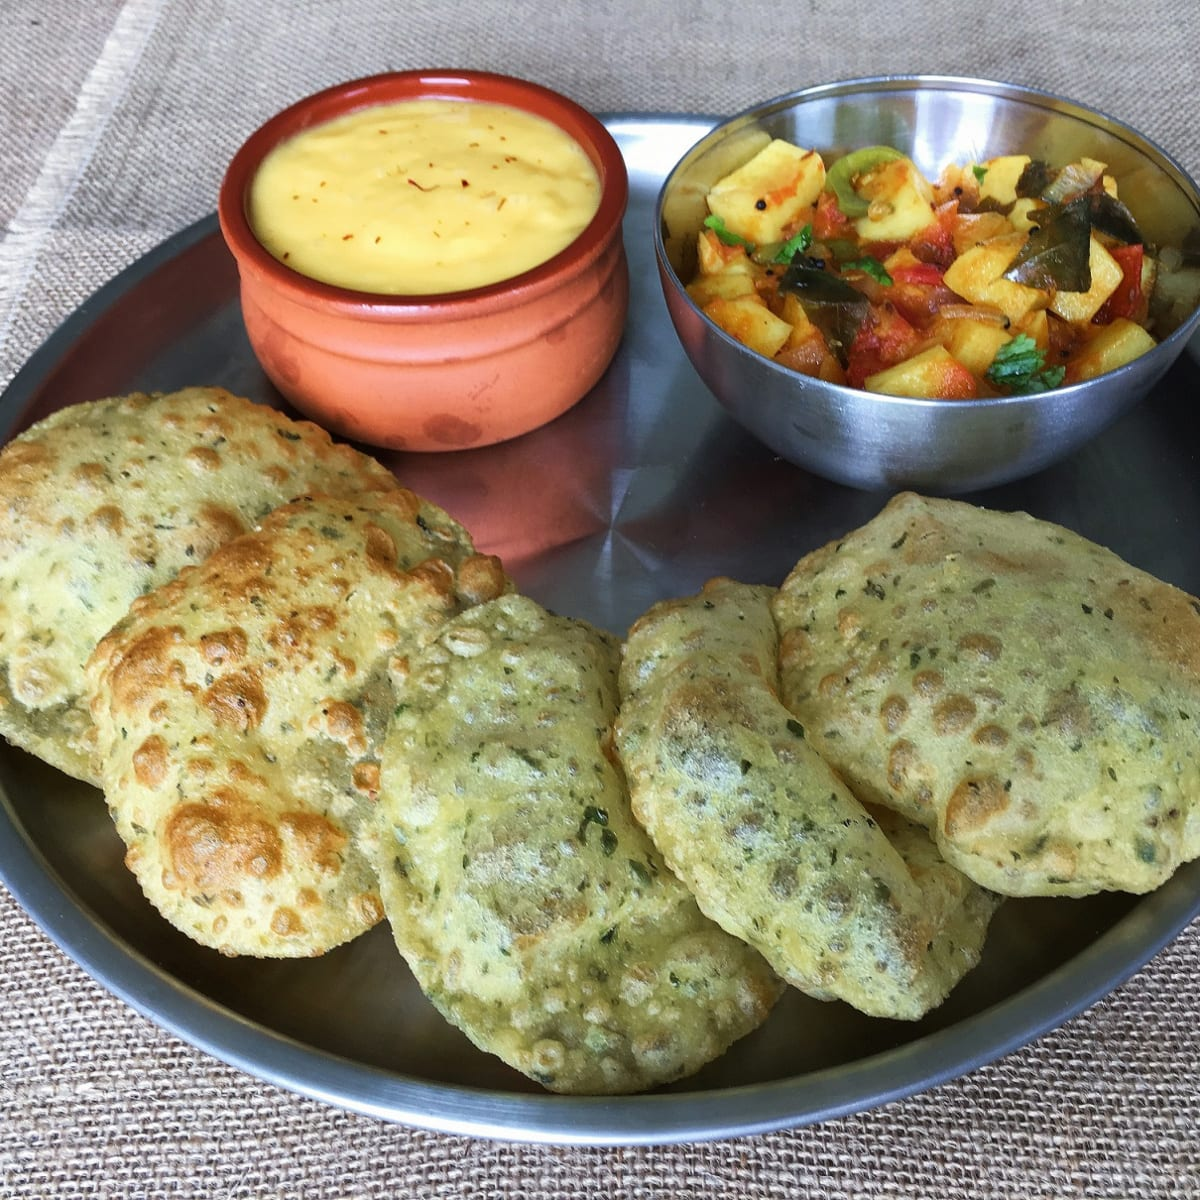 Fenugreek leaf poori